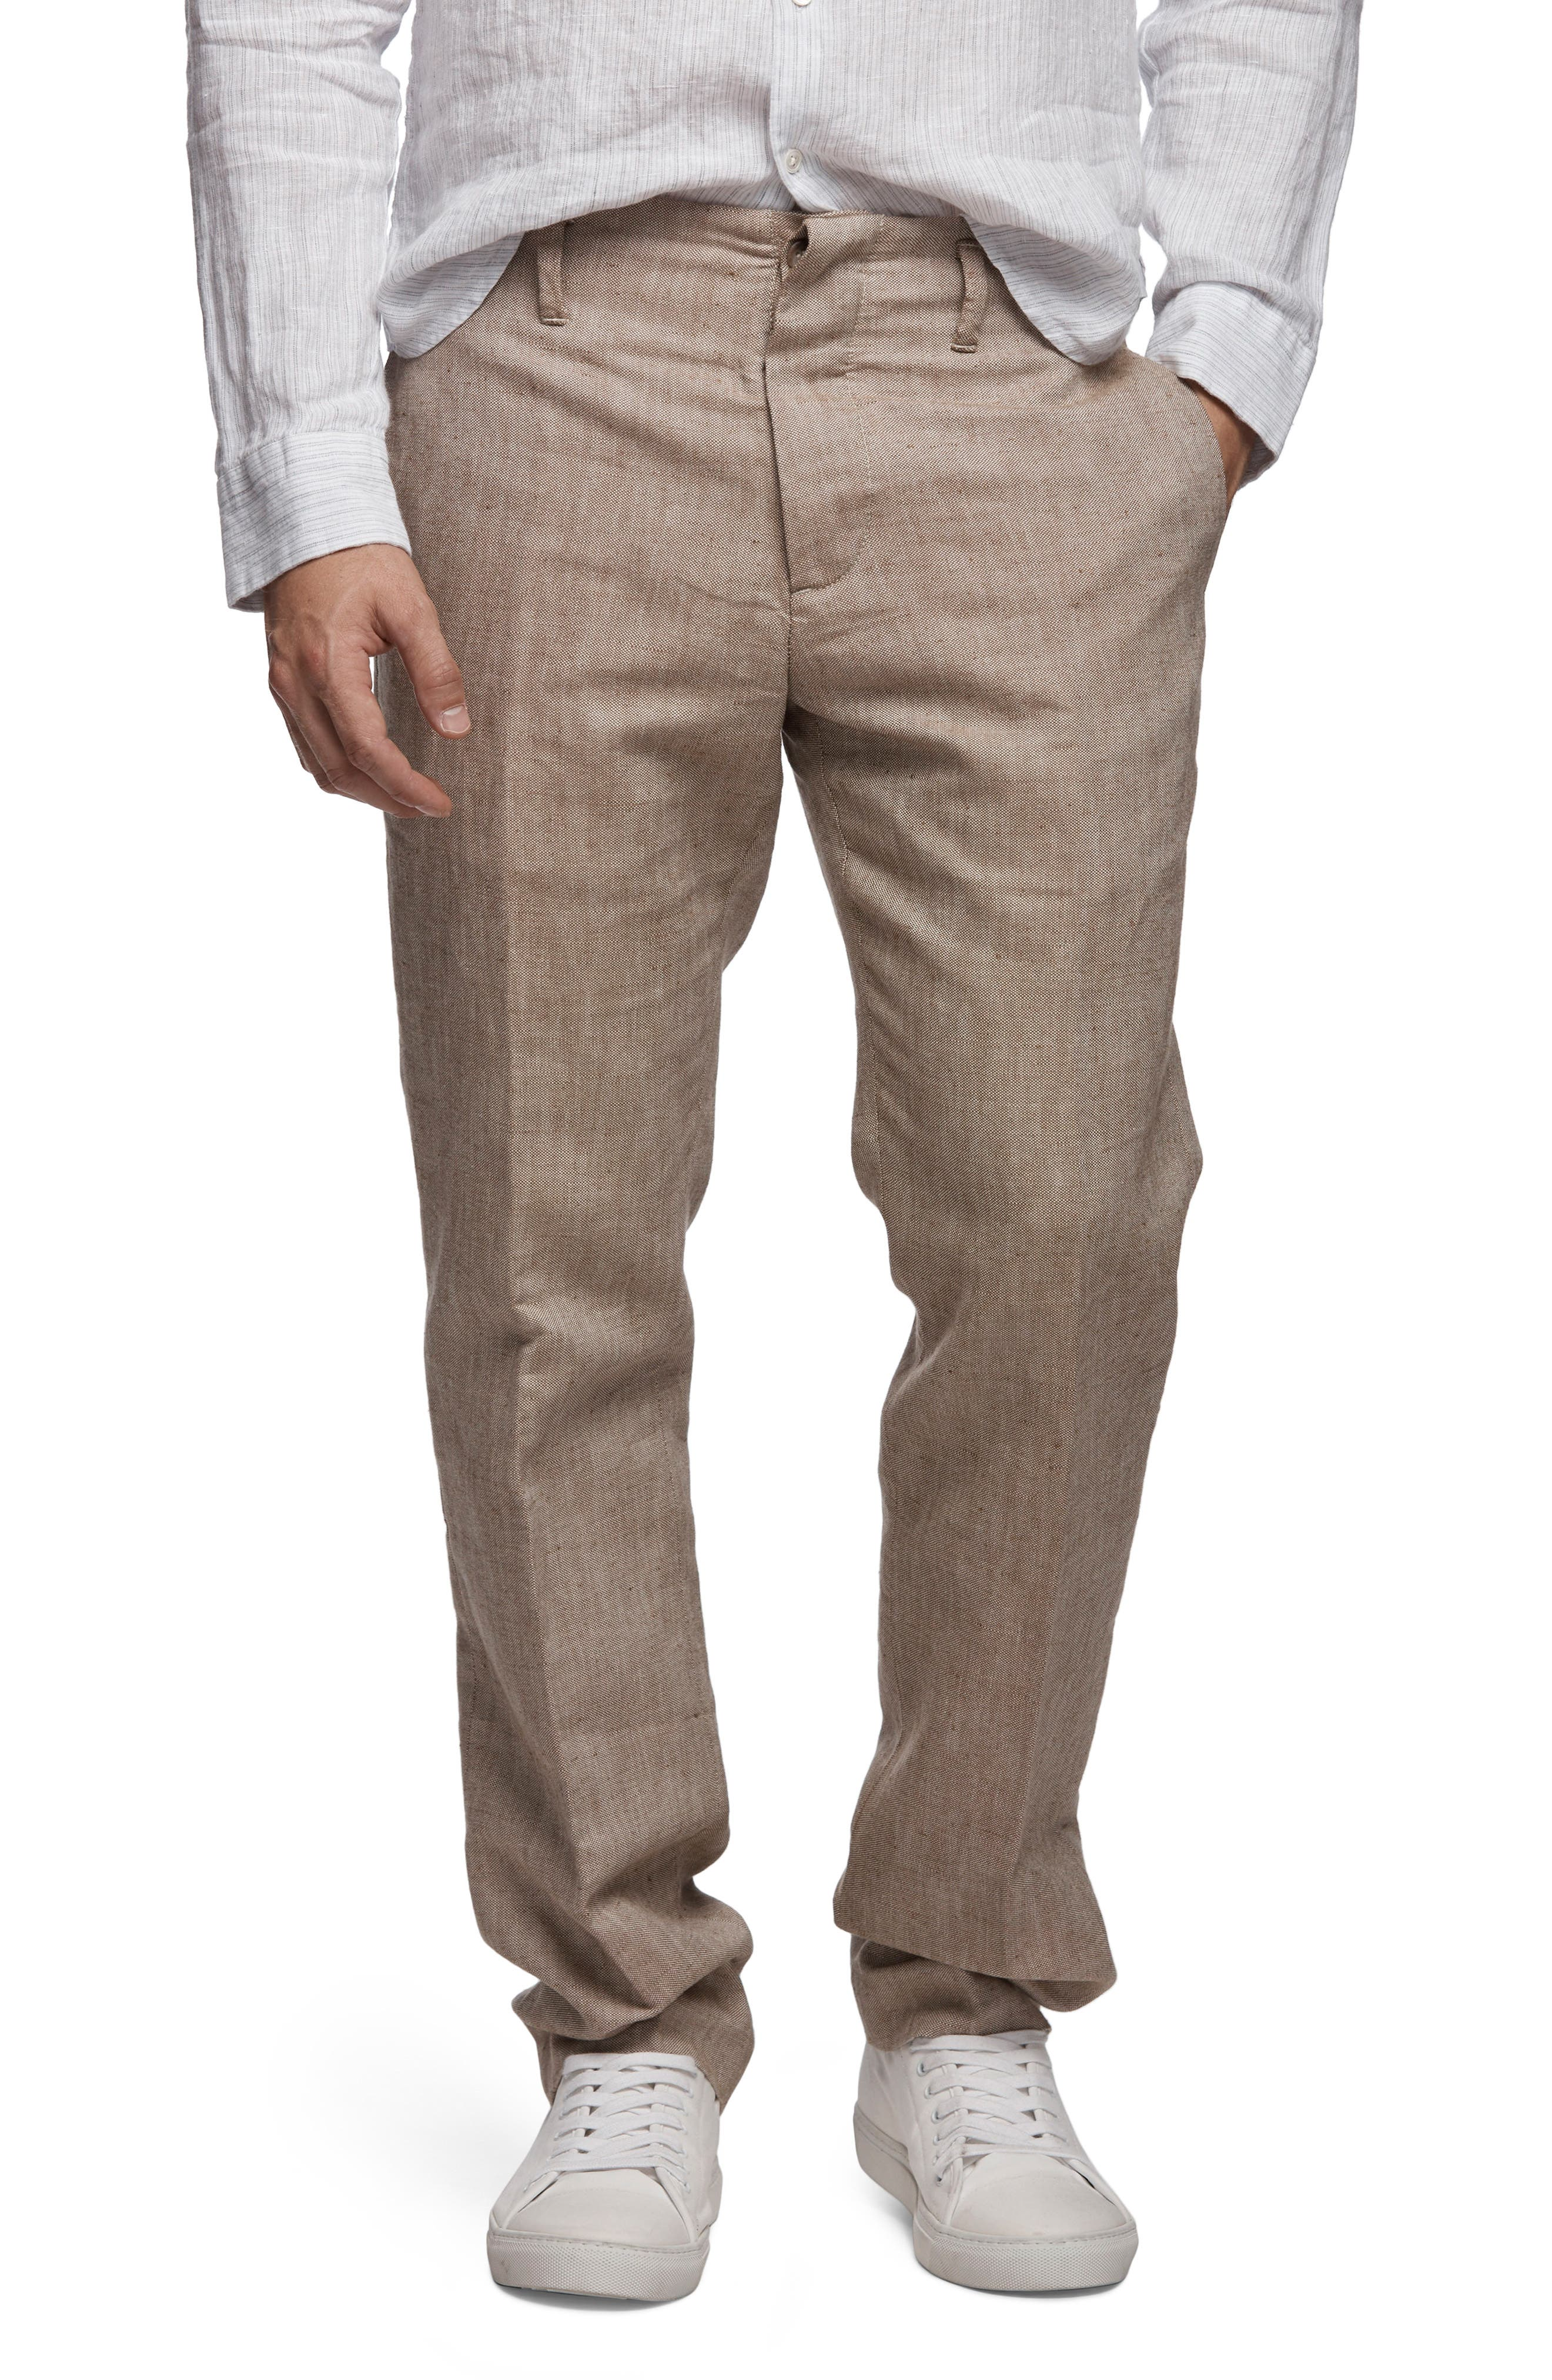 James Perse Canvas Chinos